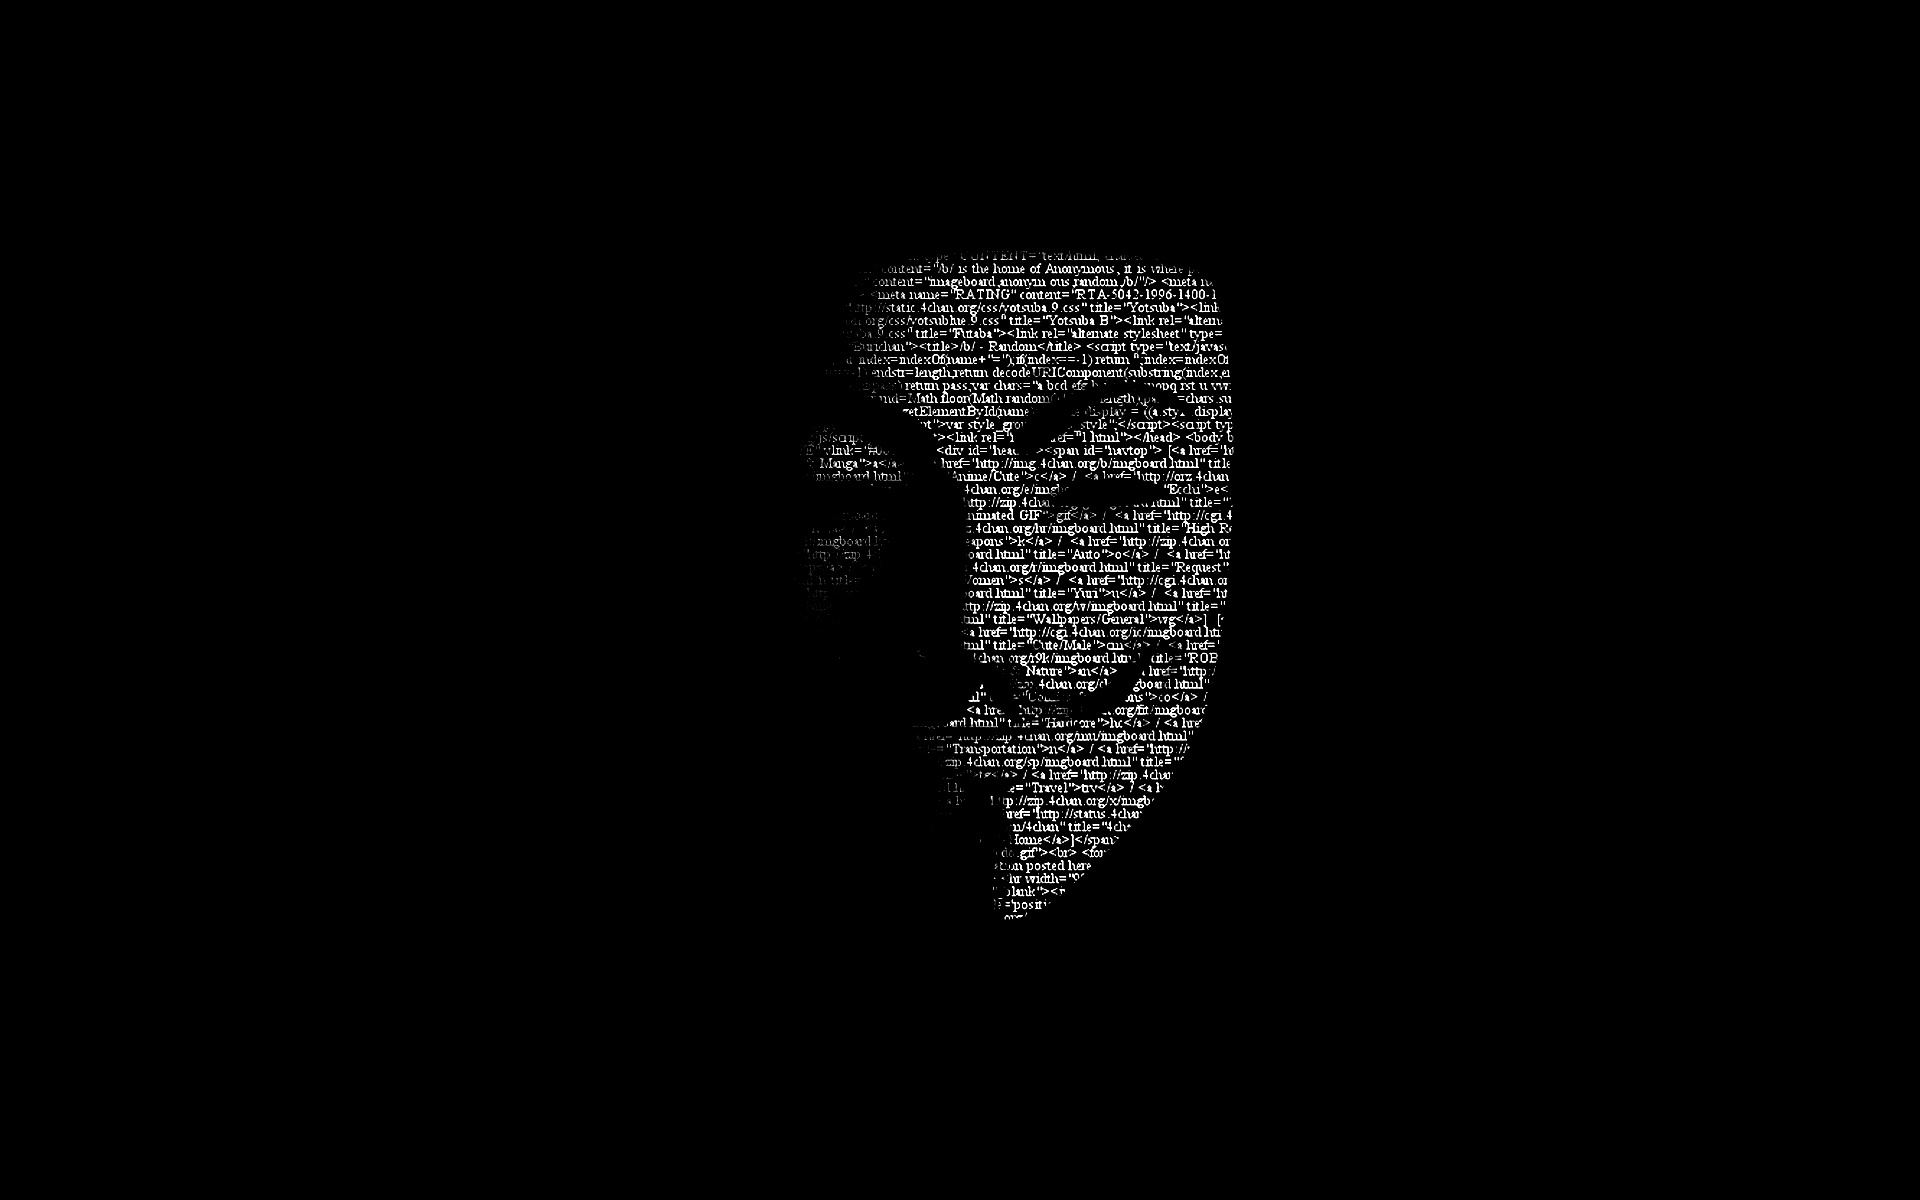 guy fawkes, v for vendetta - free wallpaper / wallpaperjam